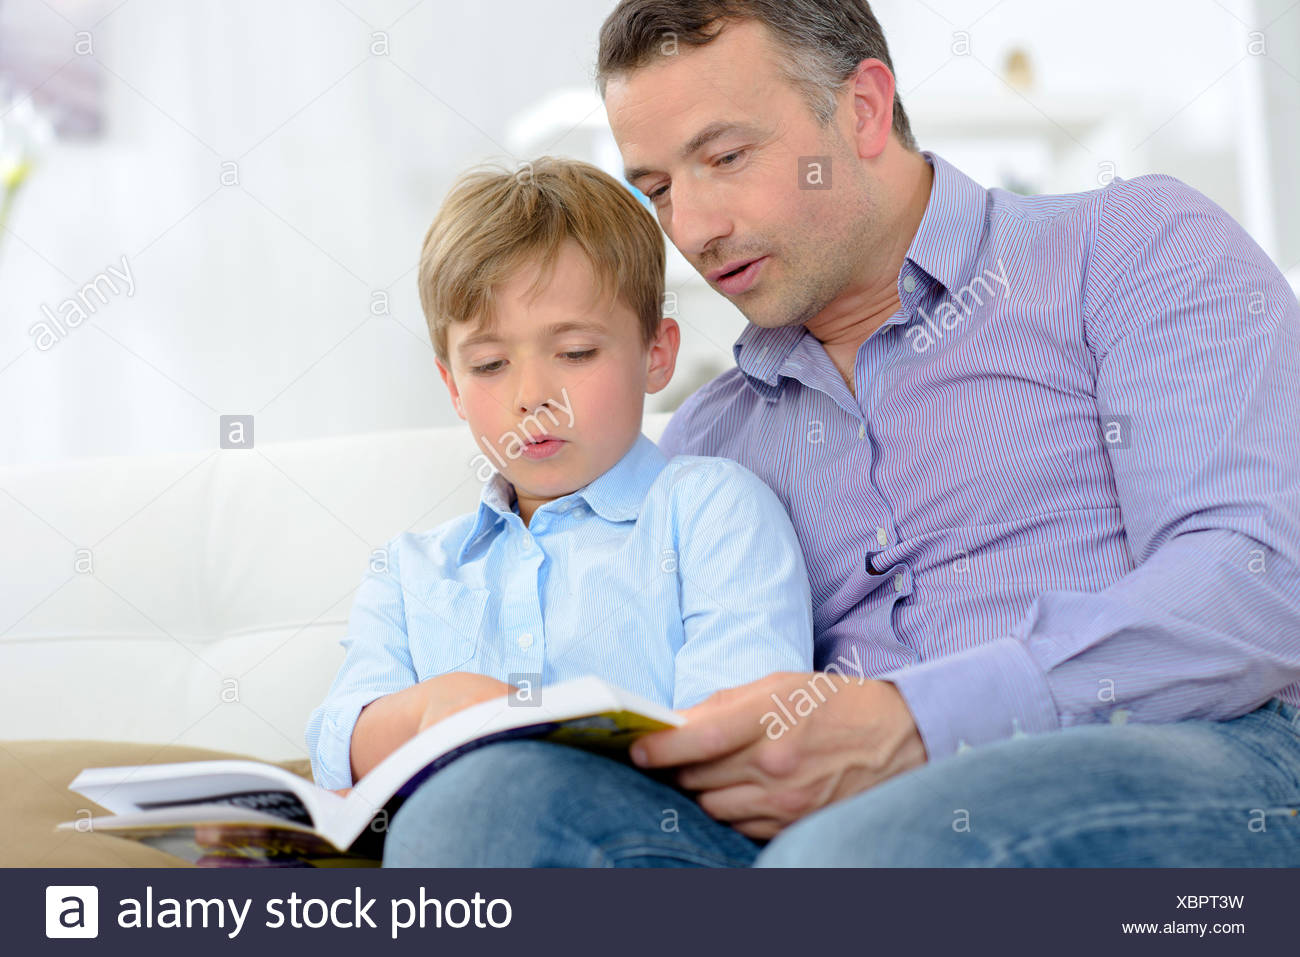 Adult and child reading - Stock Image